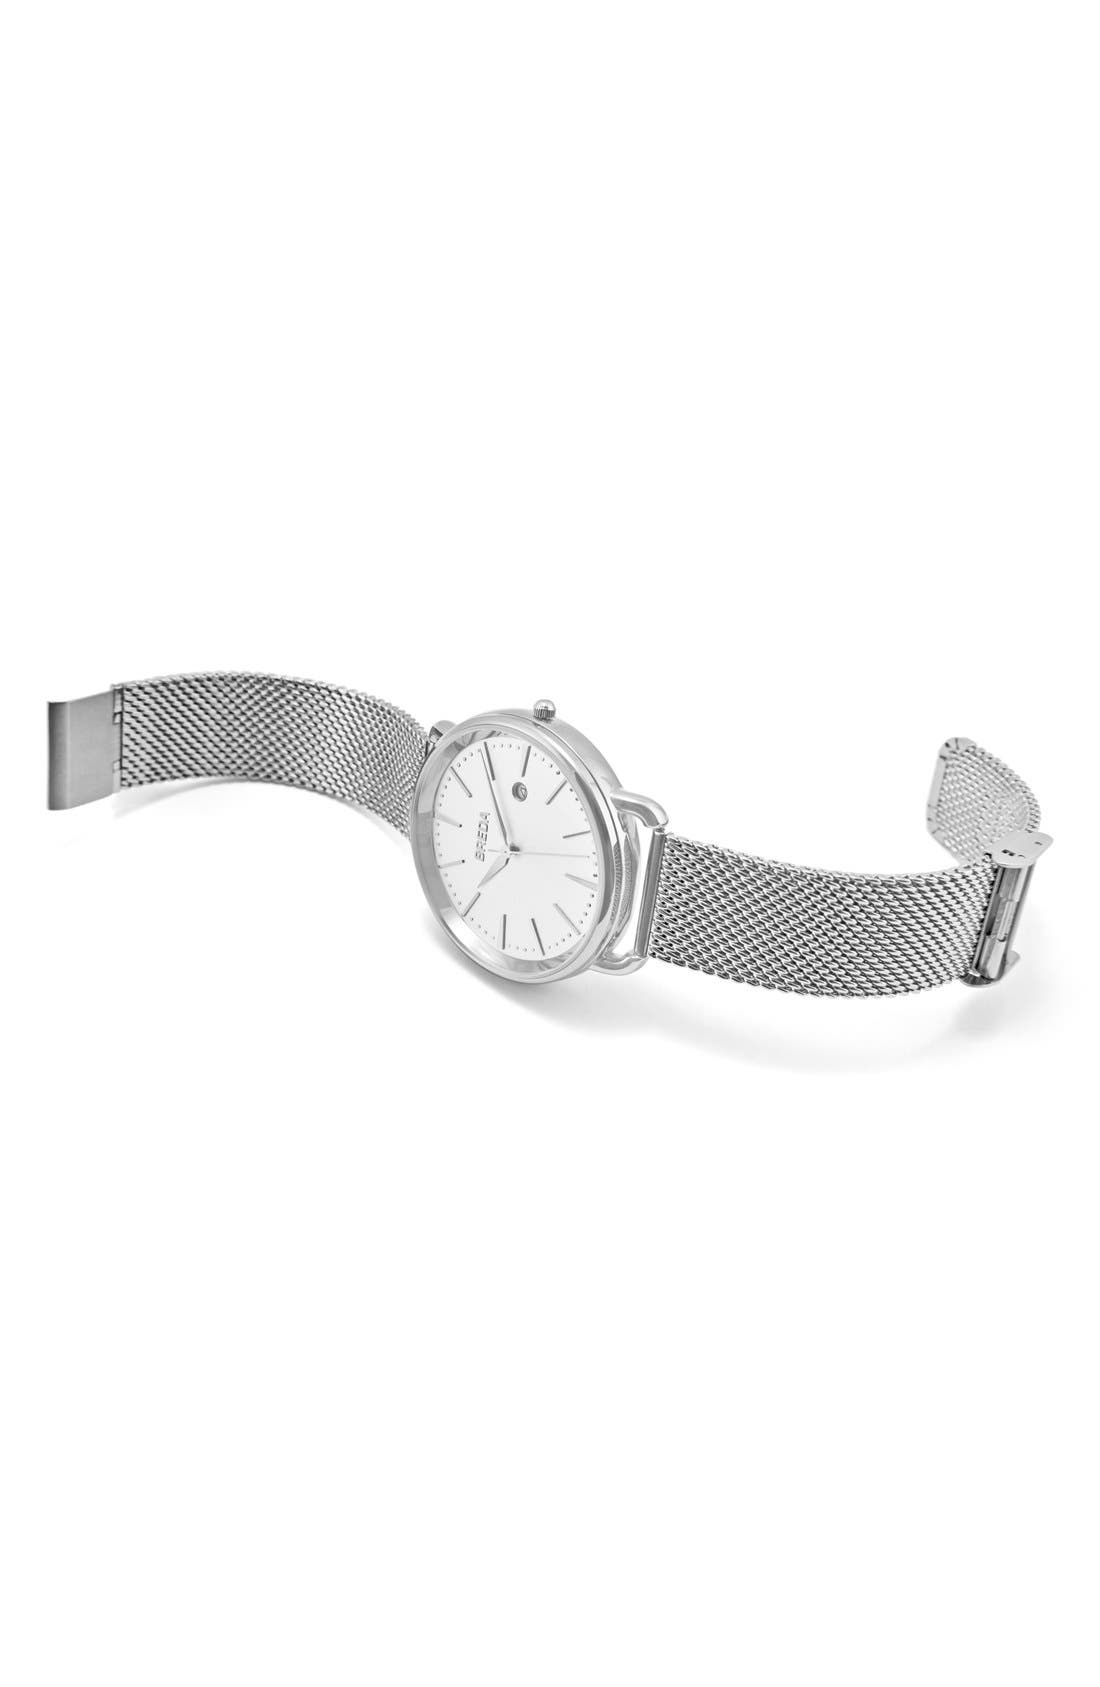 Linx Round Mesh Strap Watch, 42mm,                             Alternate thumbnail 3, color,                             040